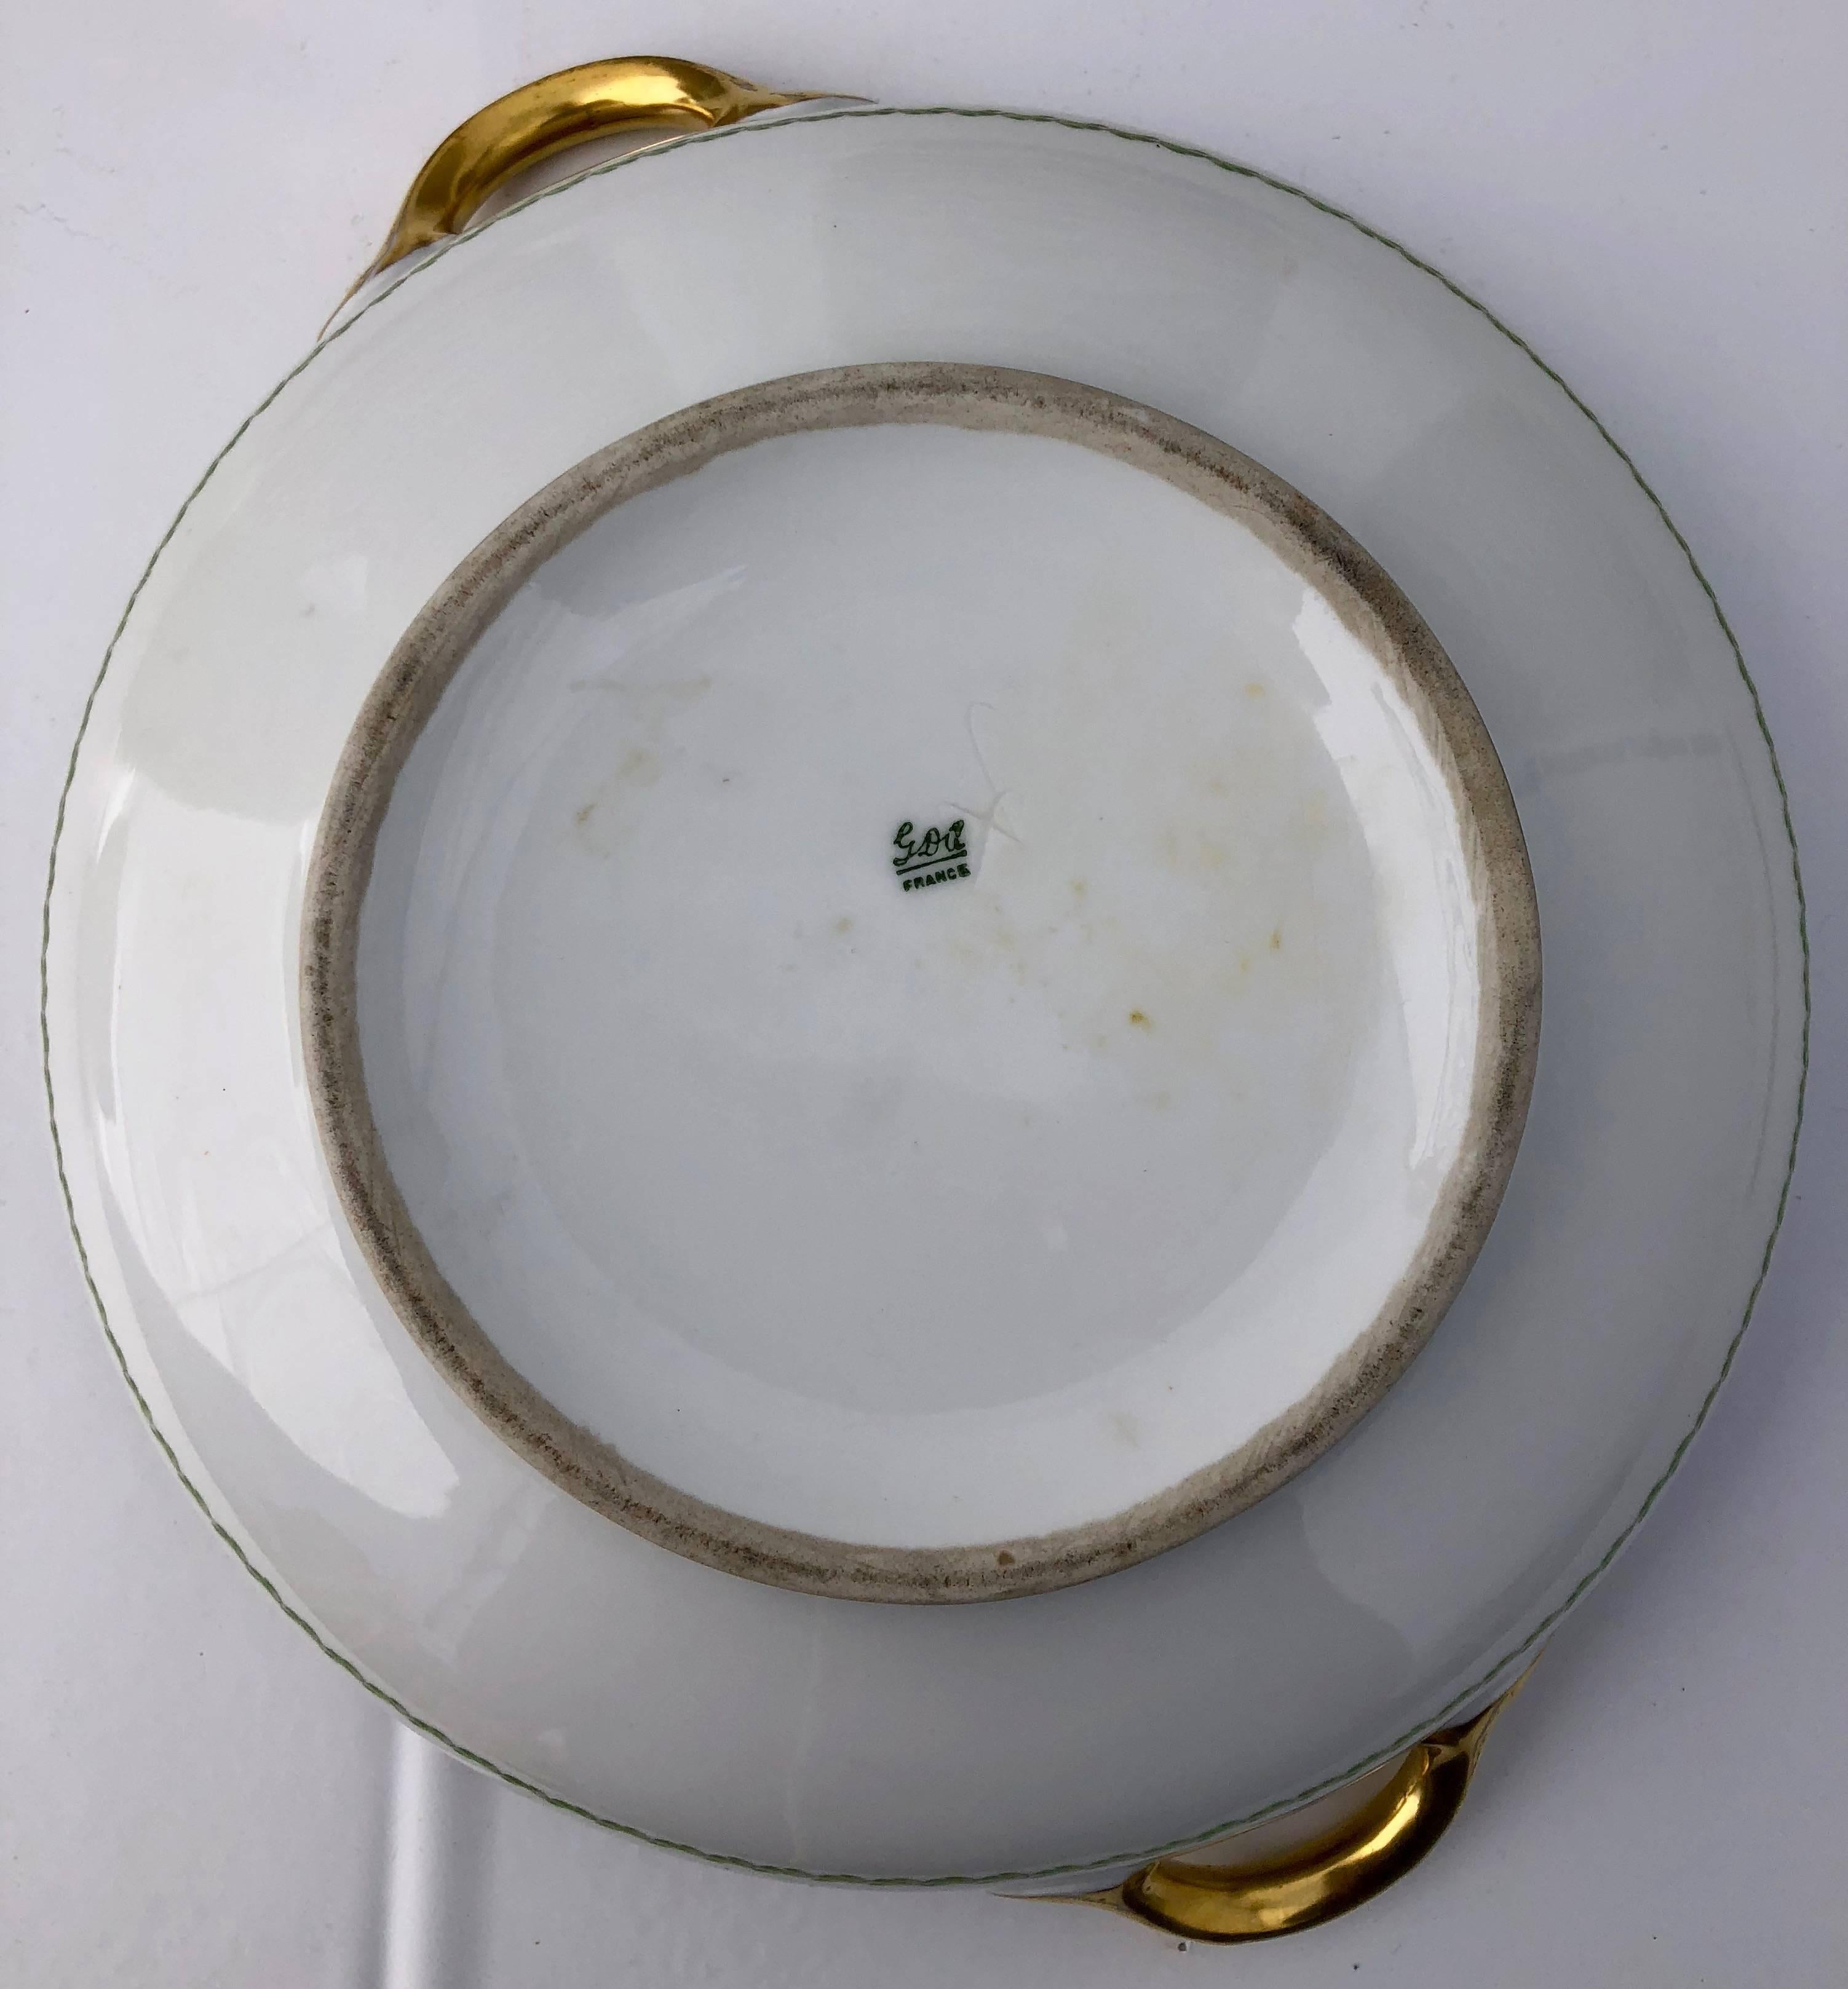 Limoges China Patterns Gold Trim Awesome Design Inspiration